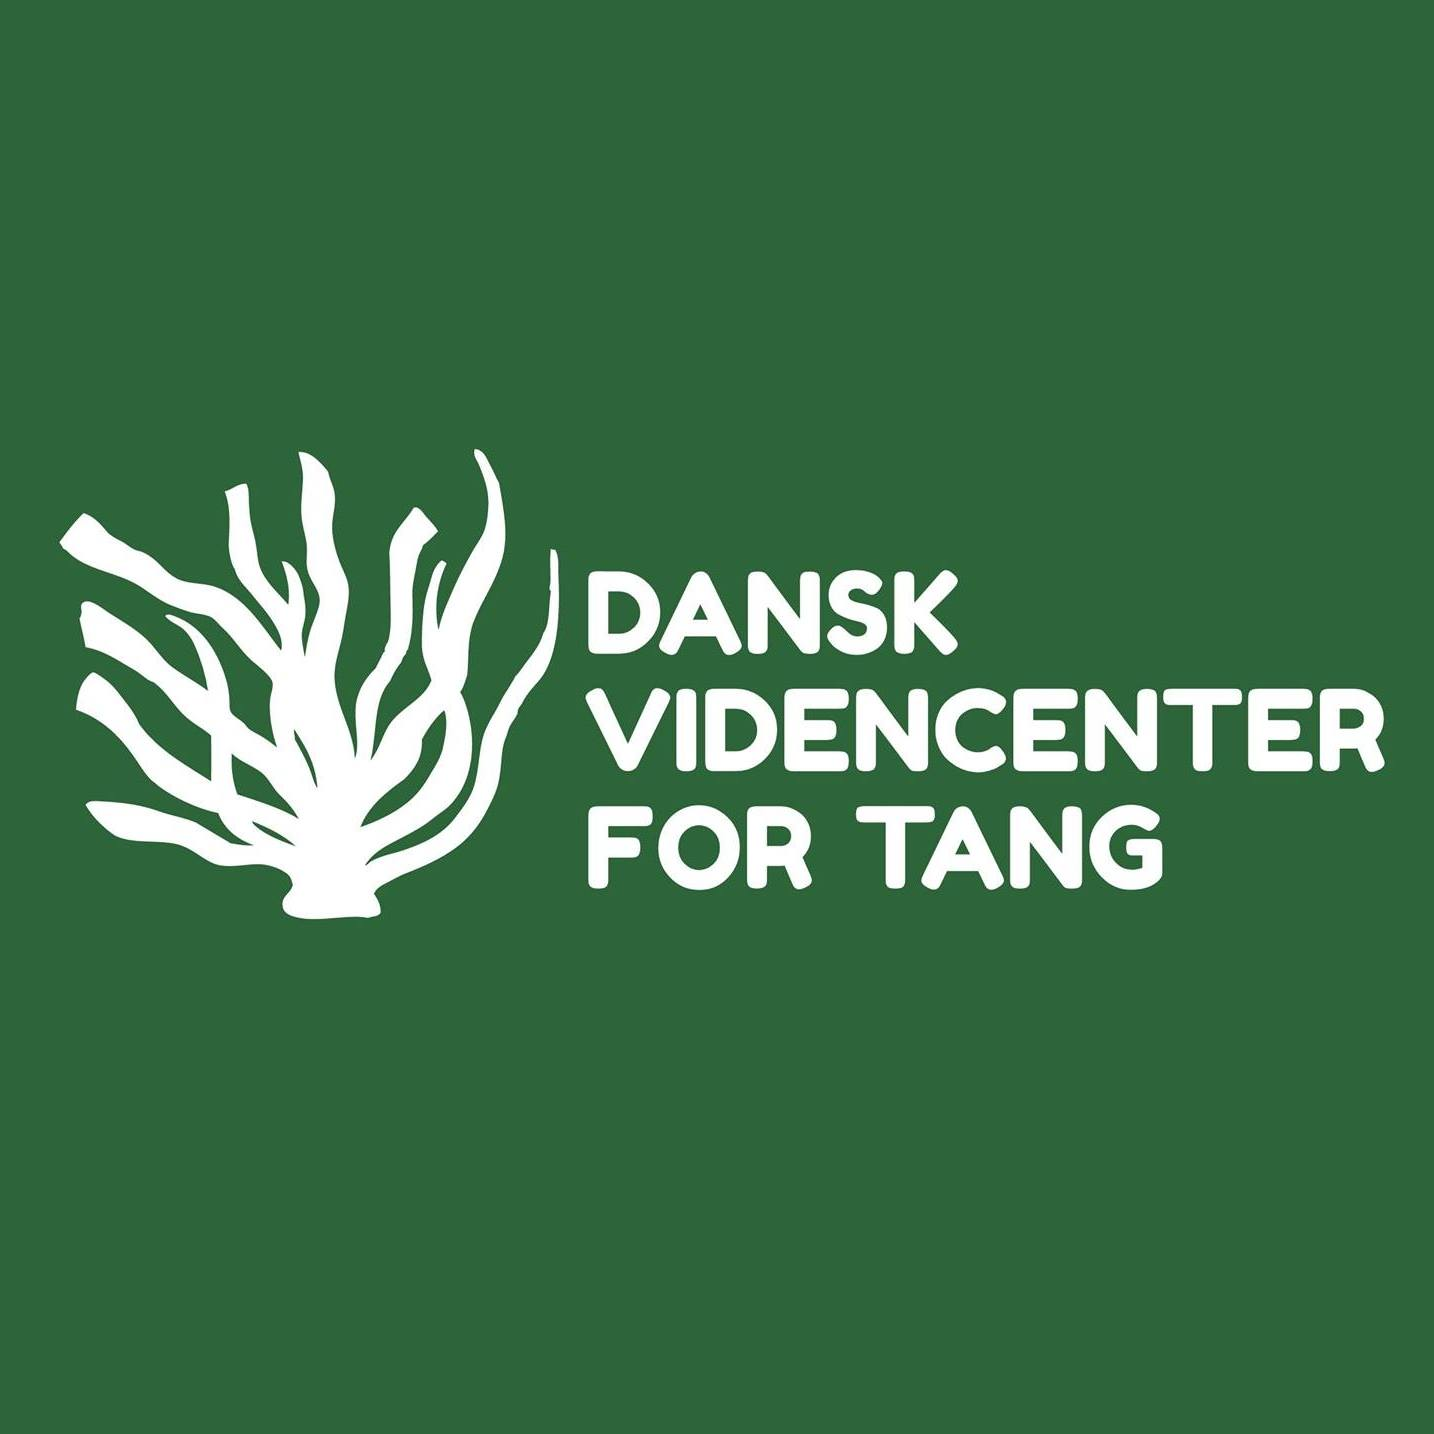 Dansk videncenter for tang